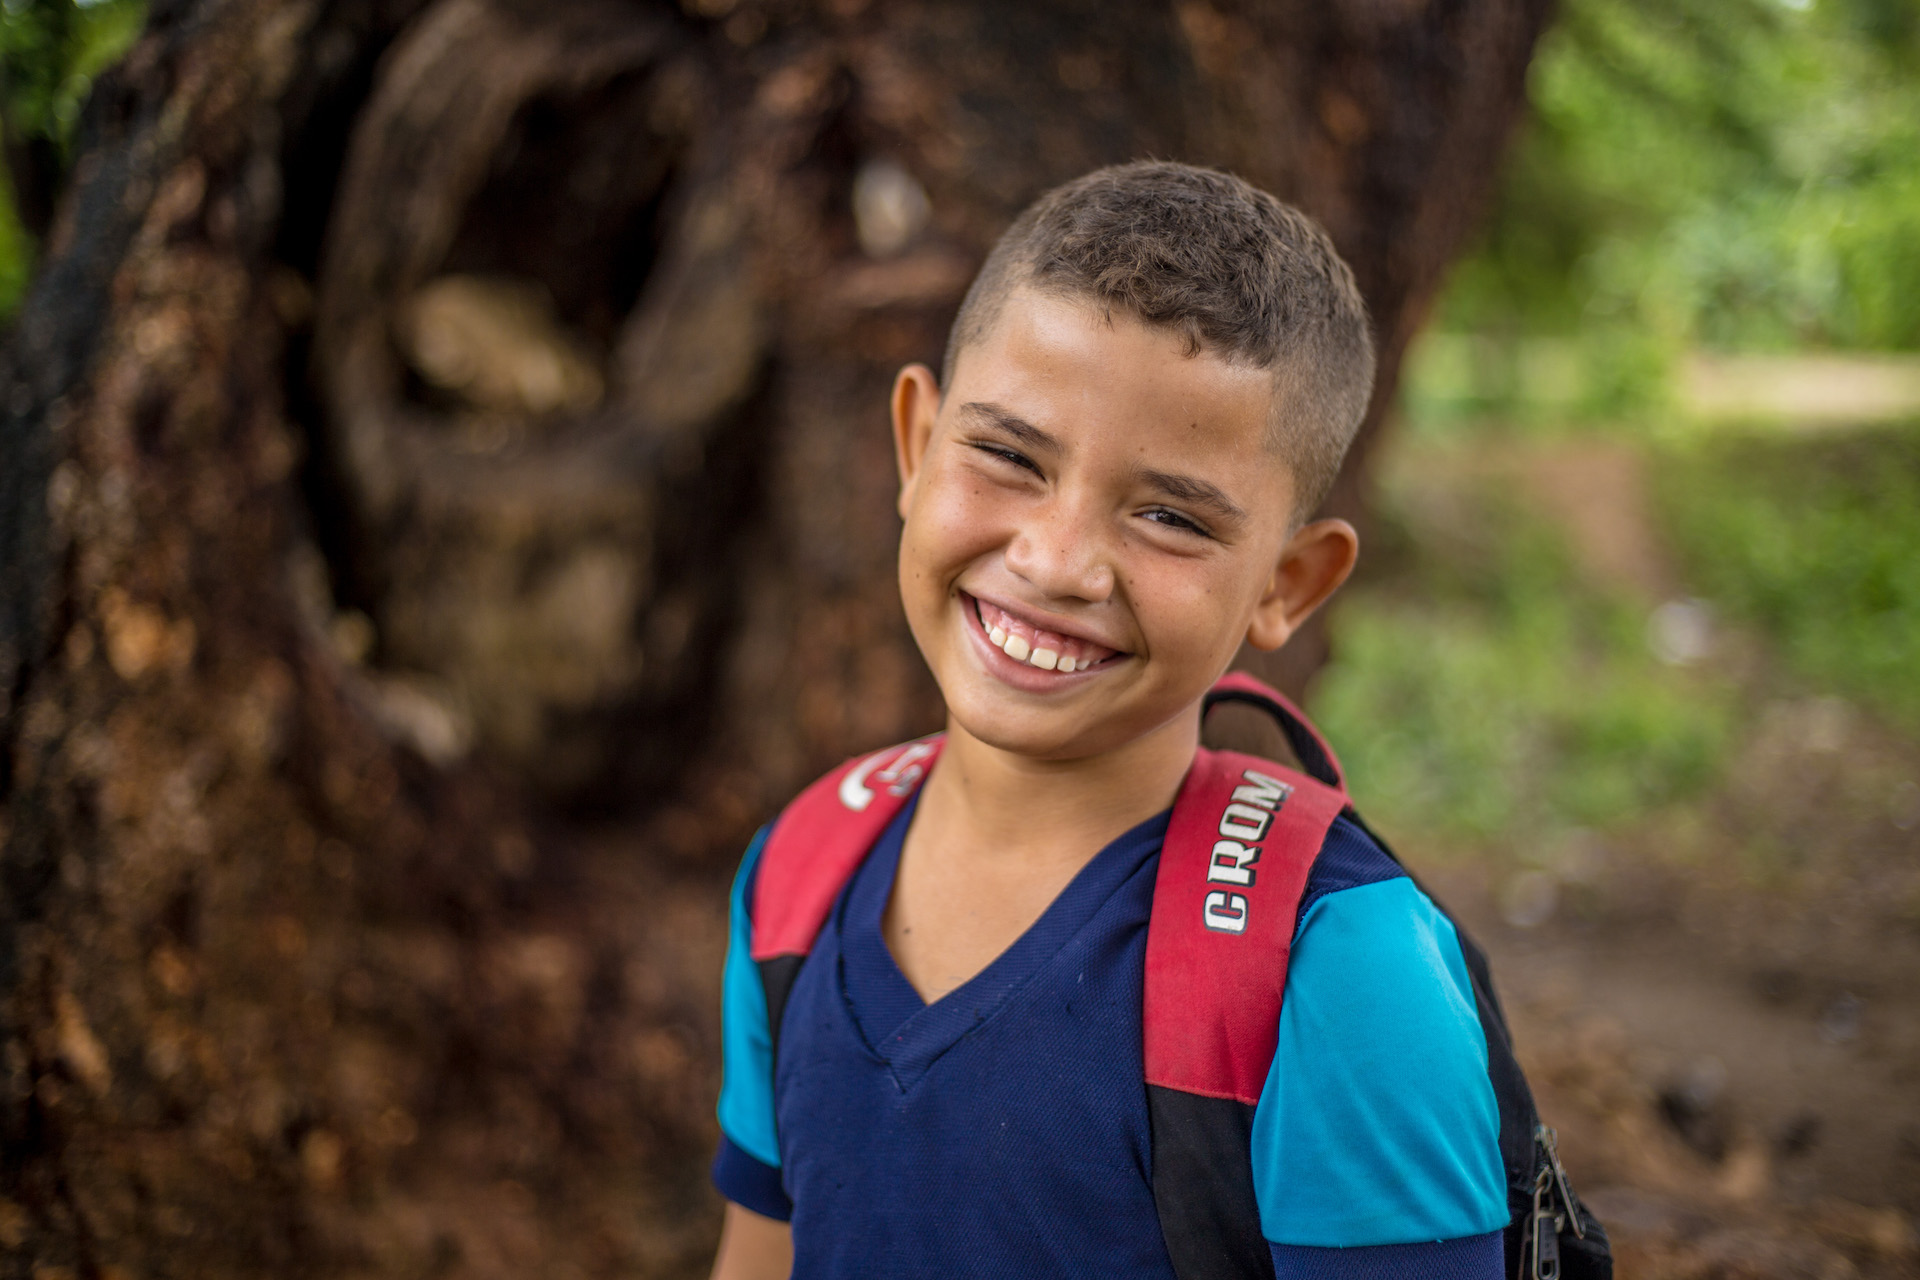 A boy smiles at the camera, wearing a backpack.